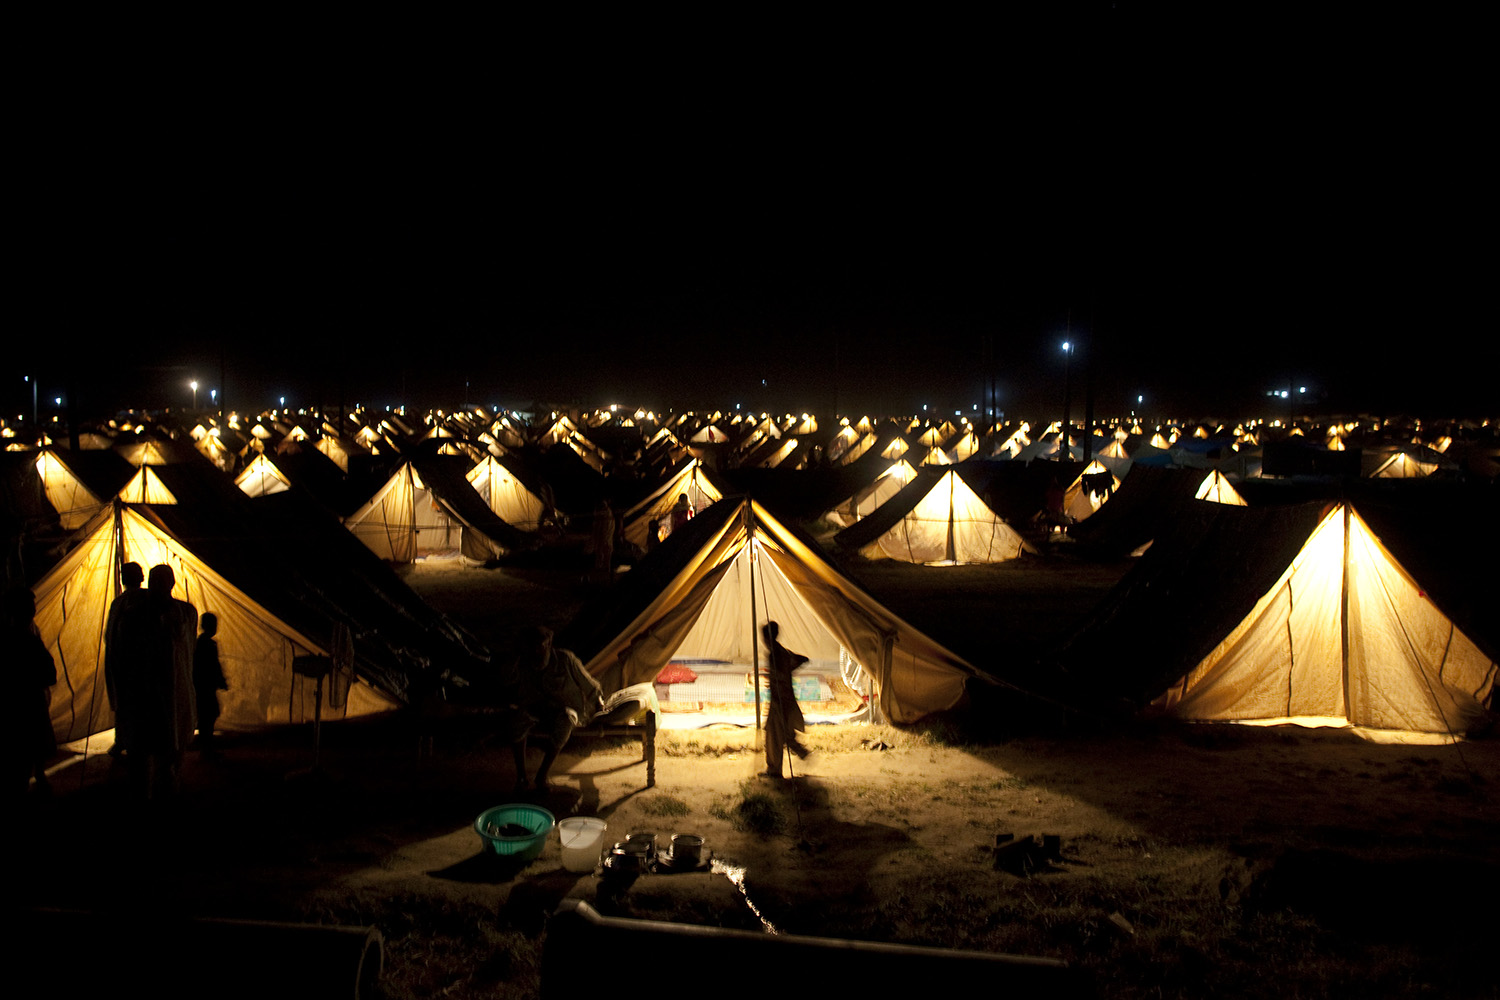 Tents tightly packed together are lit up at night at the Shah Mansoor relief camp in Swabi, Pakistan, on June 21, 2009.